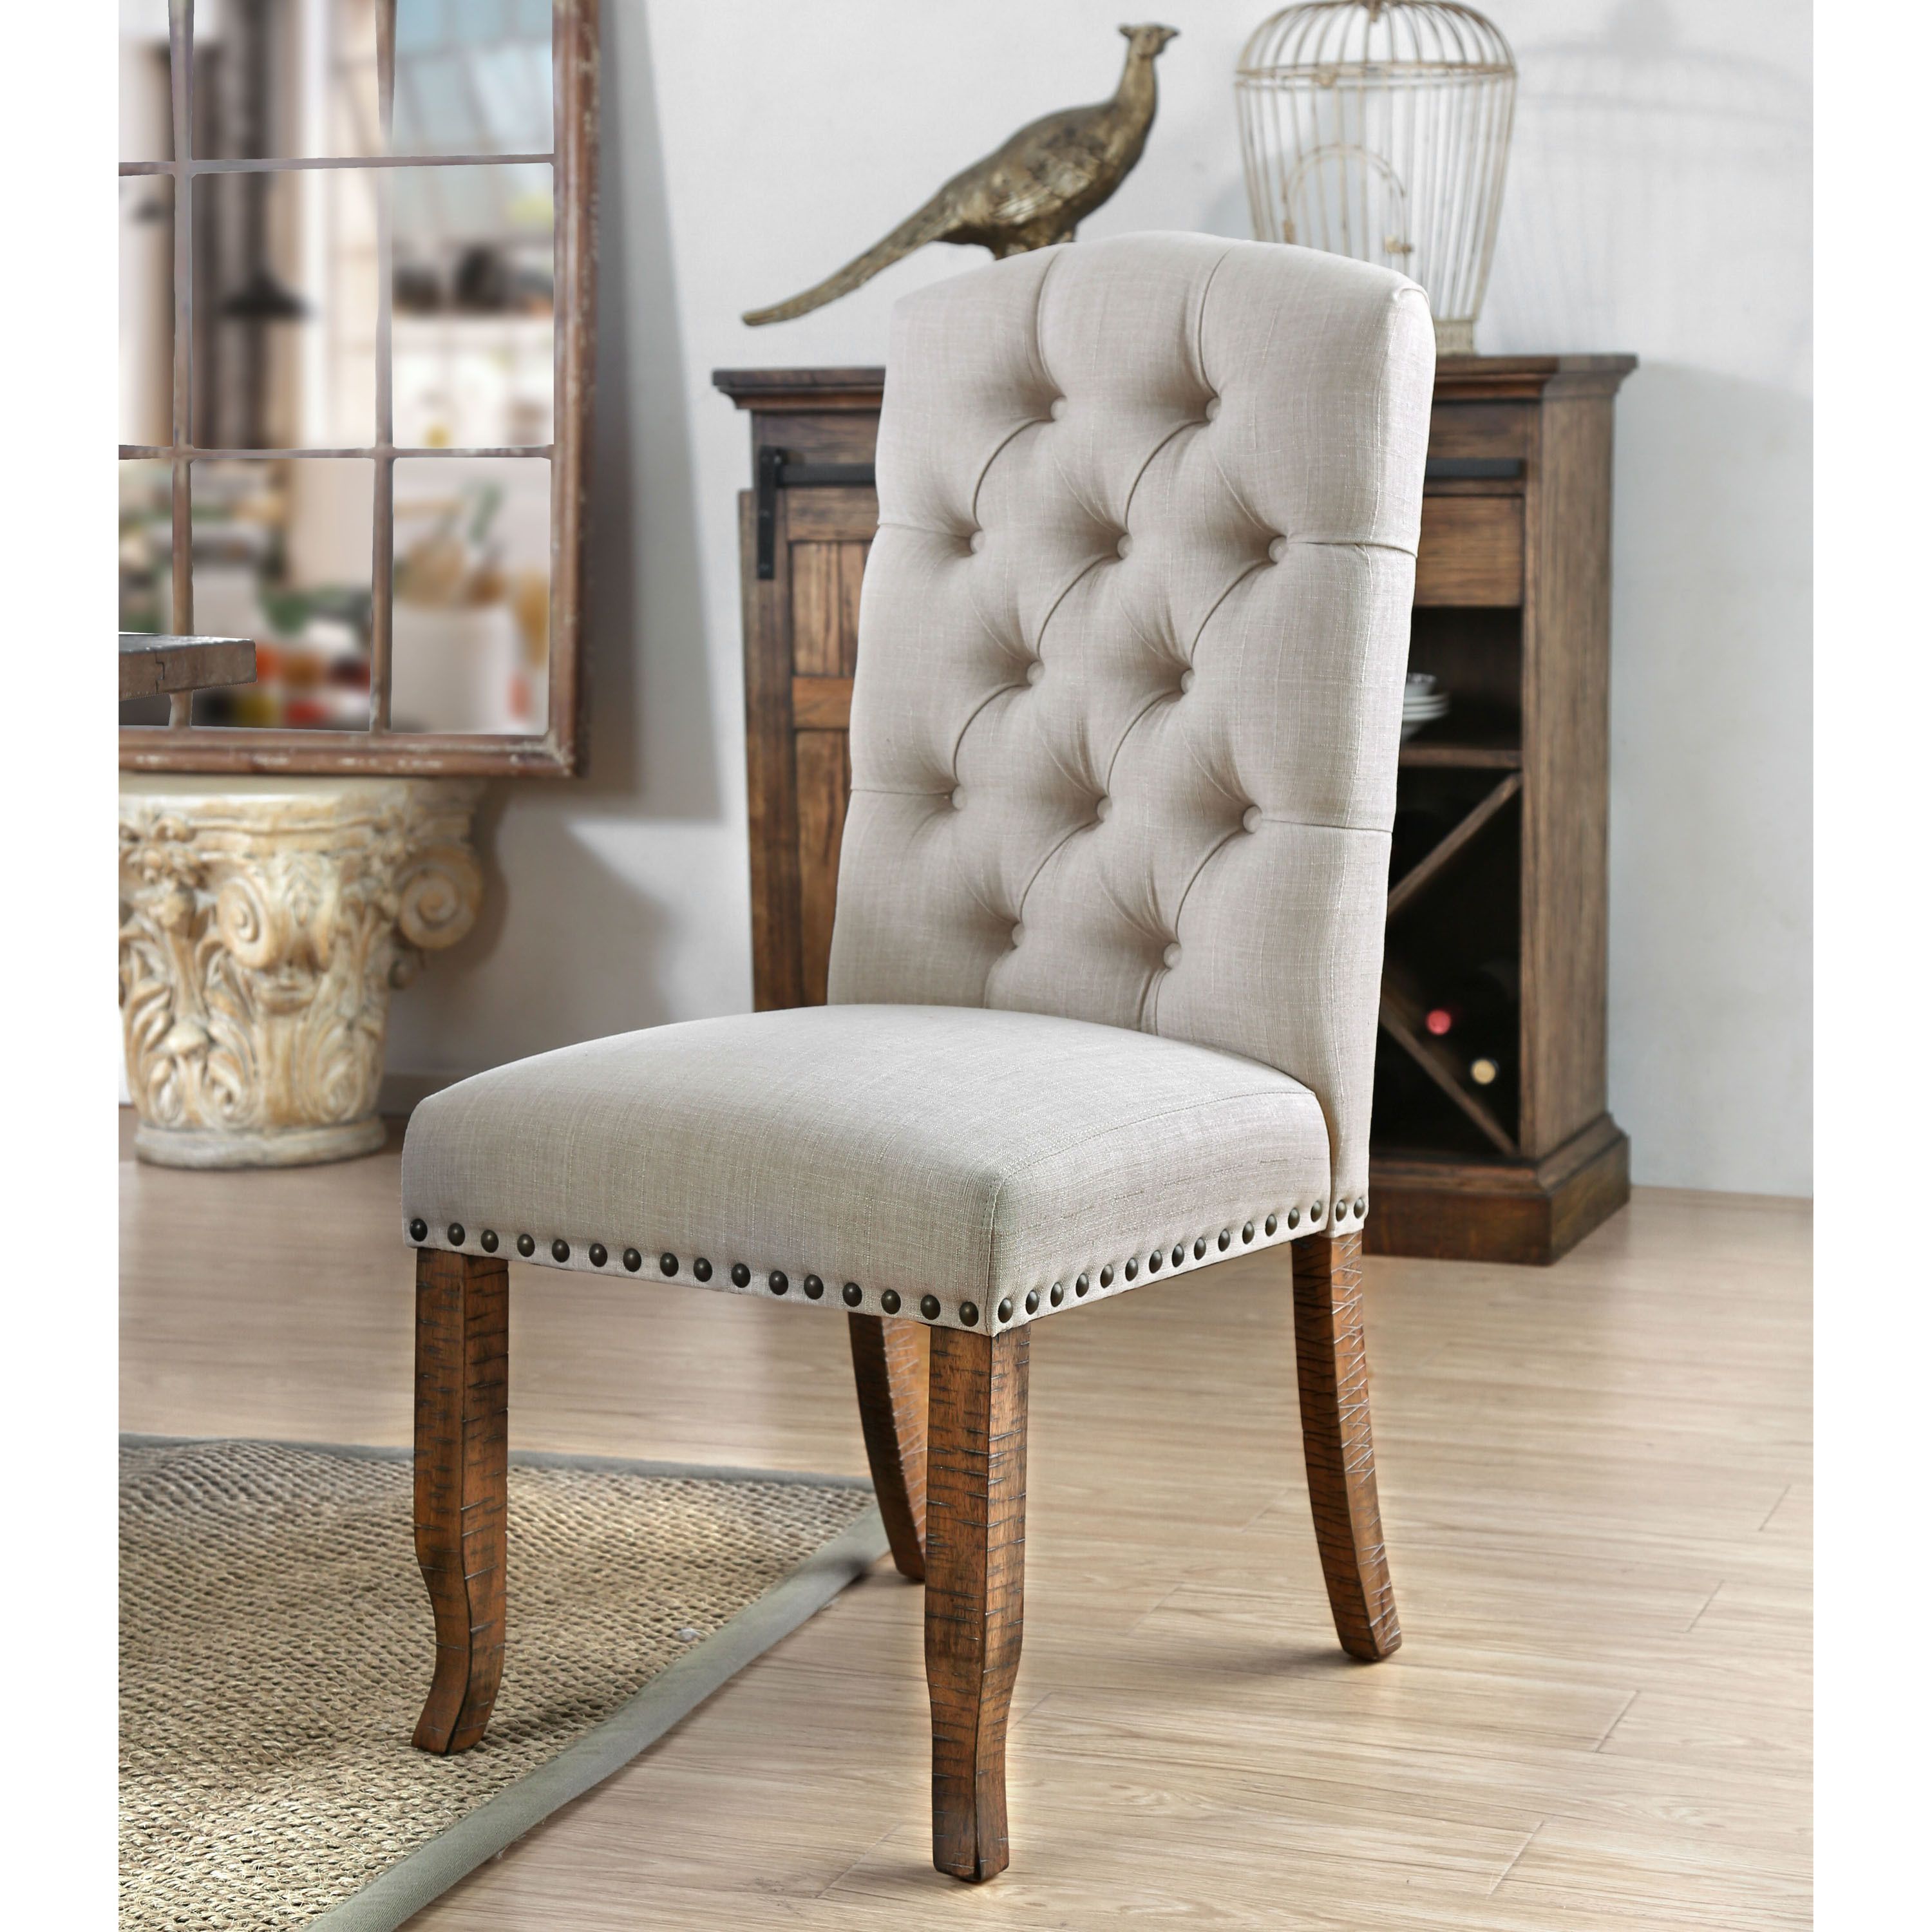 Furniture Of America Hail Rustic Fabric Tufted Dining Chairs Set